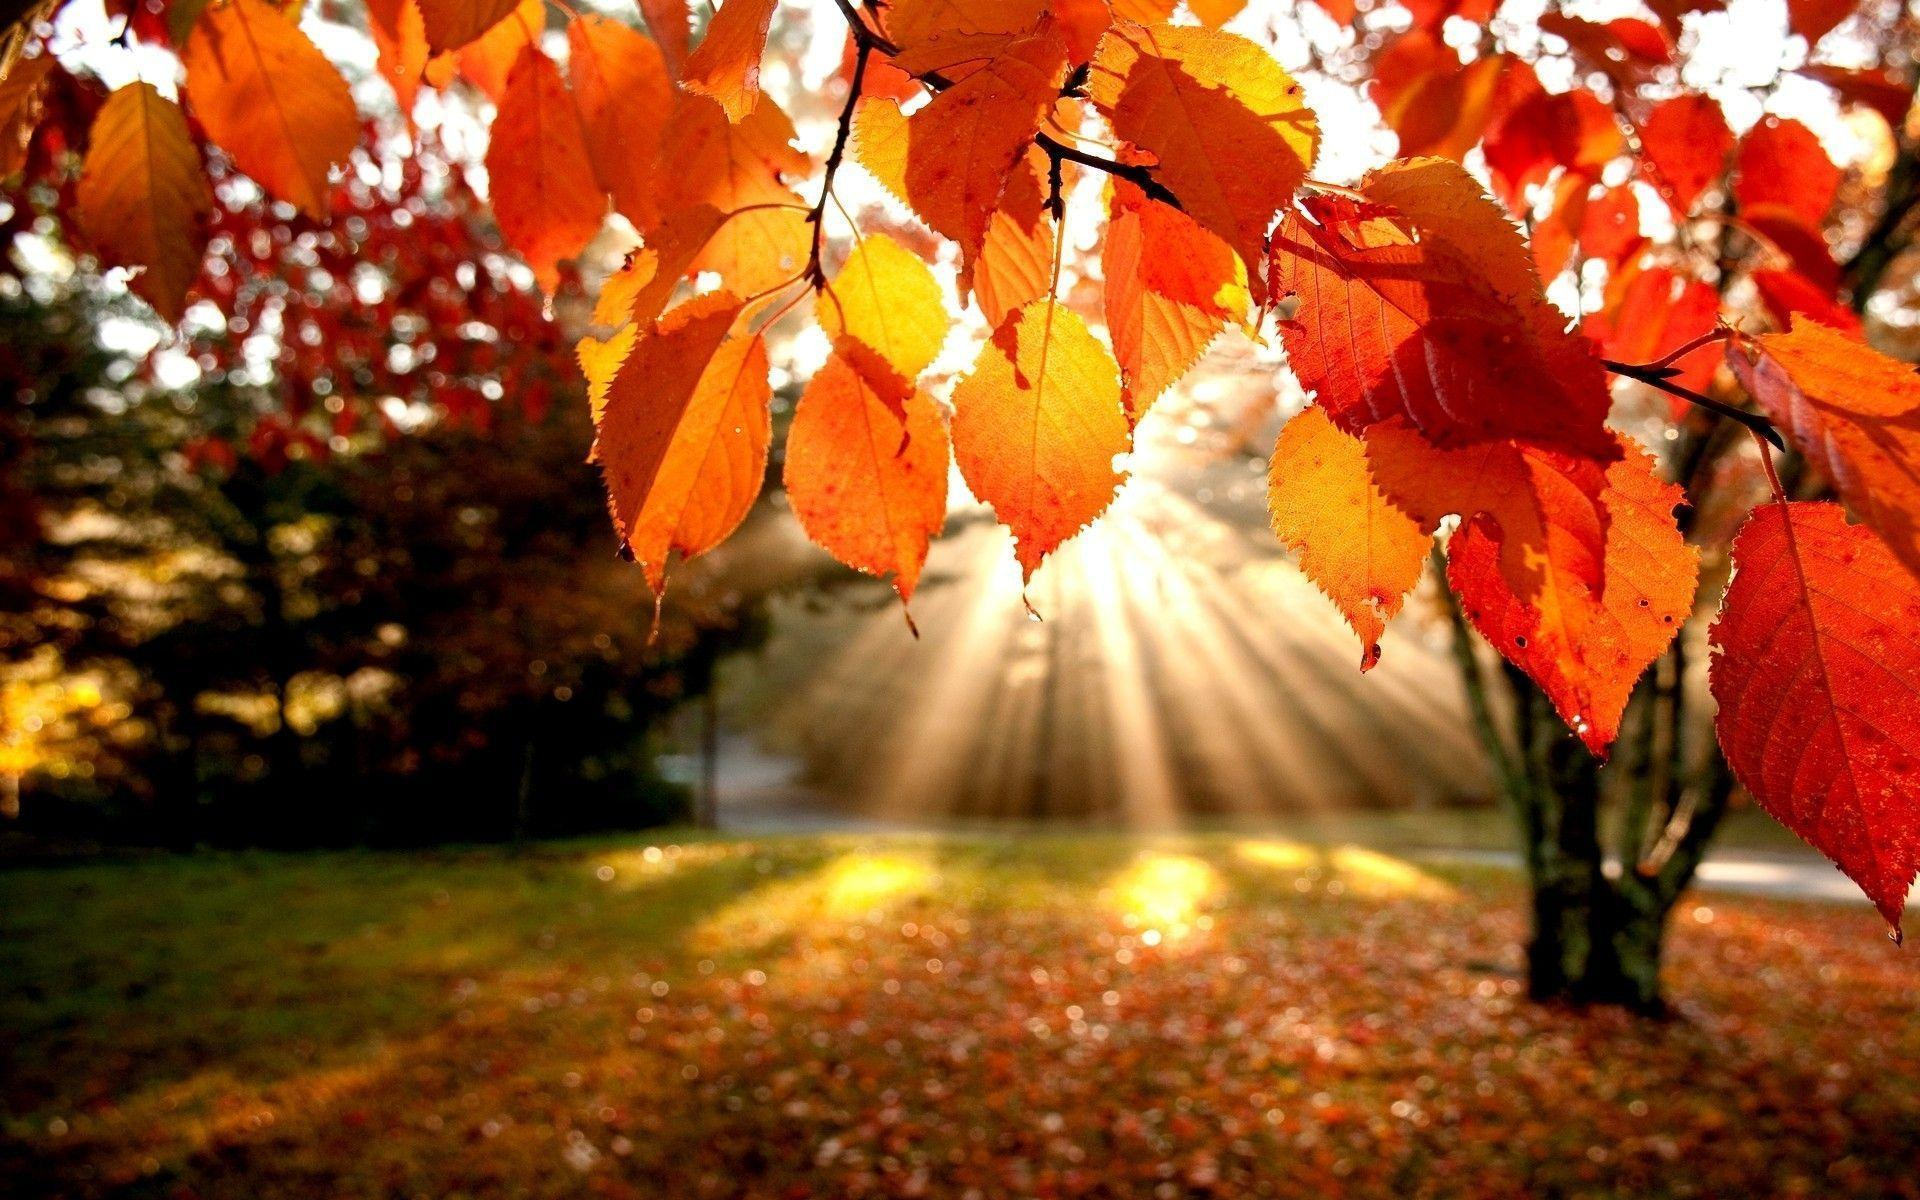 Fall Leaf Wallpapers   Top Fall Leaf Backgrounds 1920x1200